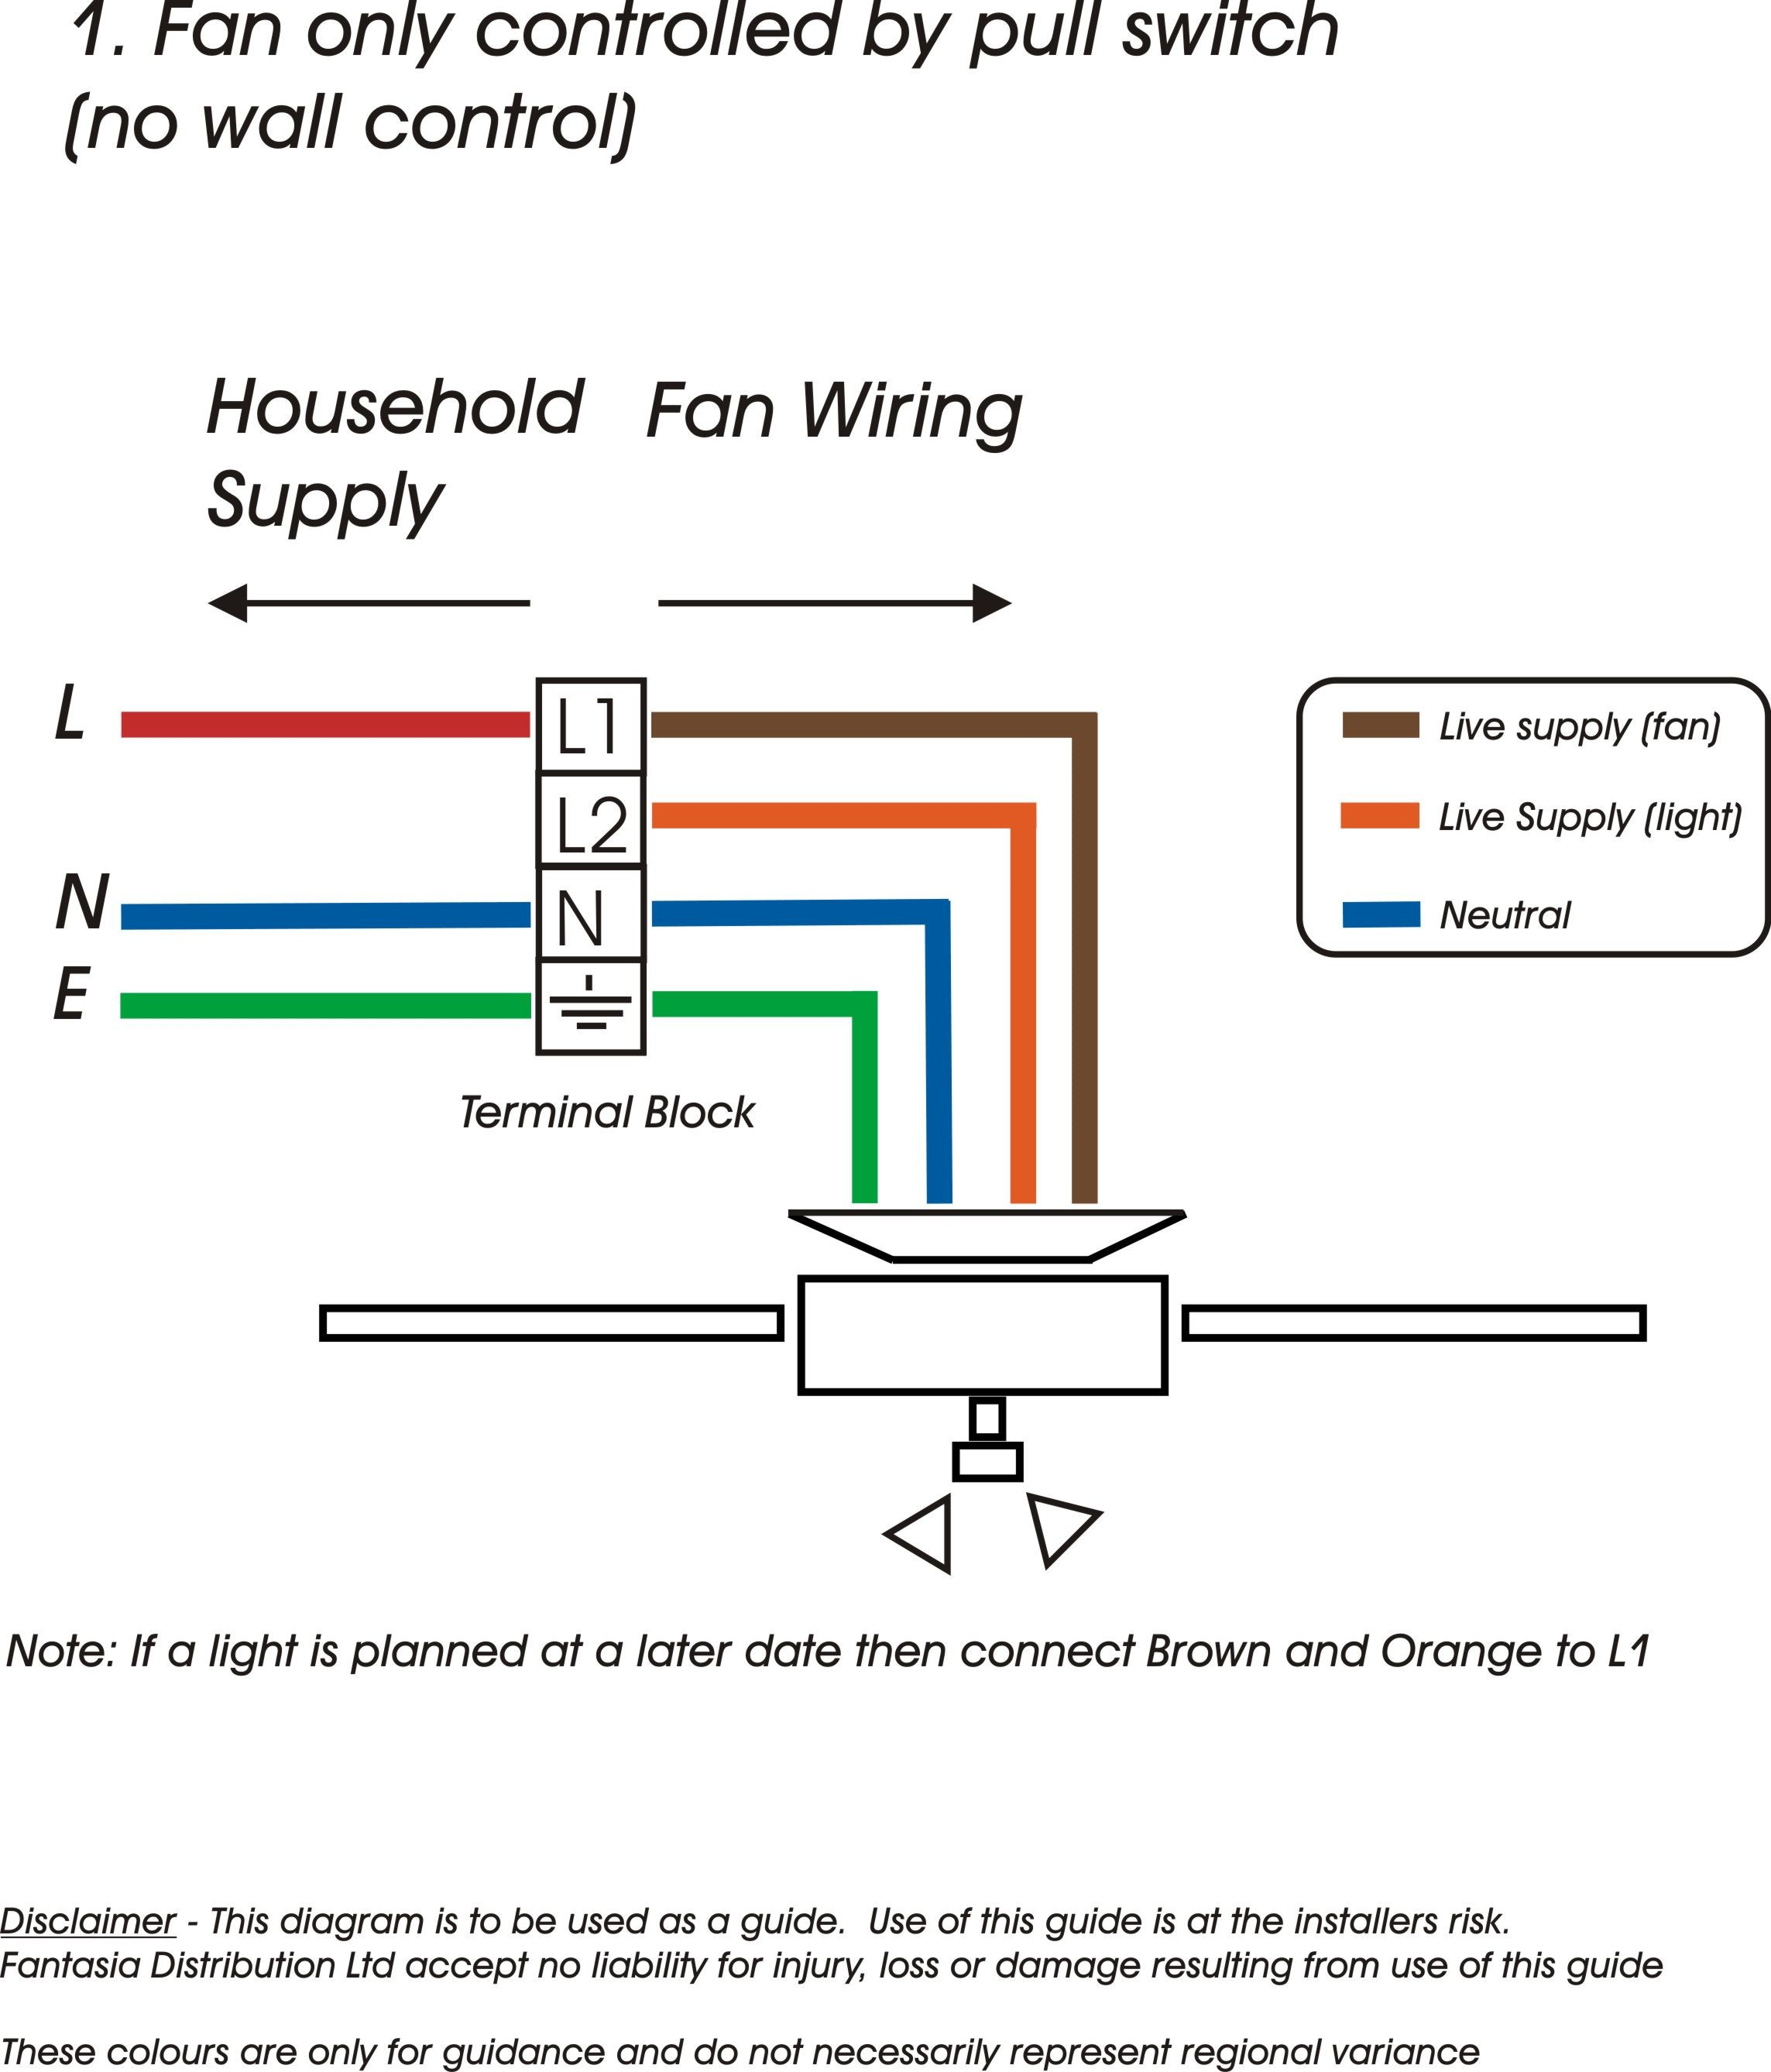 Car Dimmer Switch Wiring Diagram Automotive Switch Wiring Diagram New Fan and Light Wiring Diagram Of Car Dimmer Switch Wiring Diagram